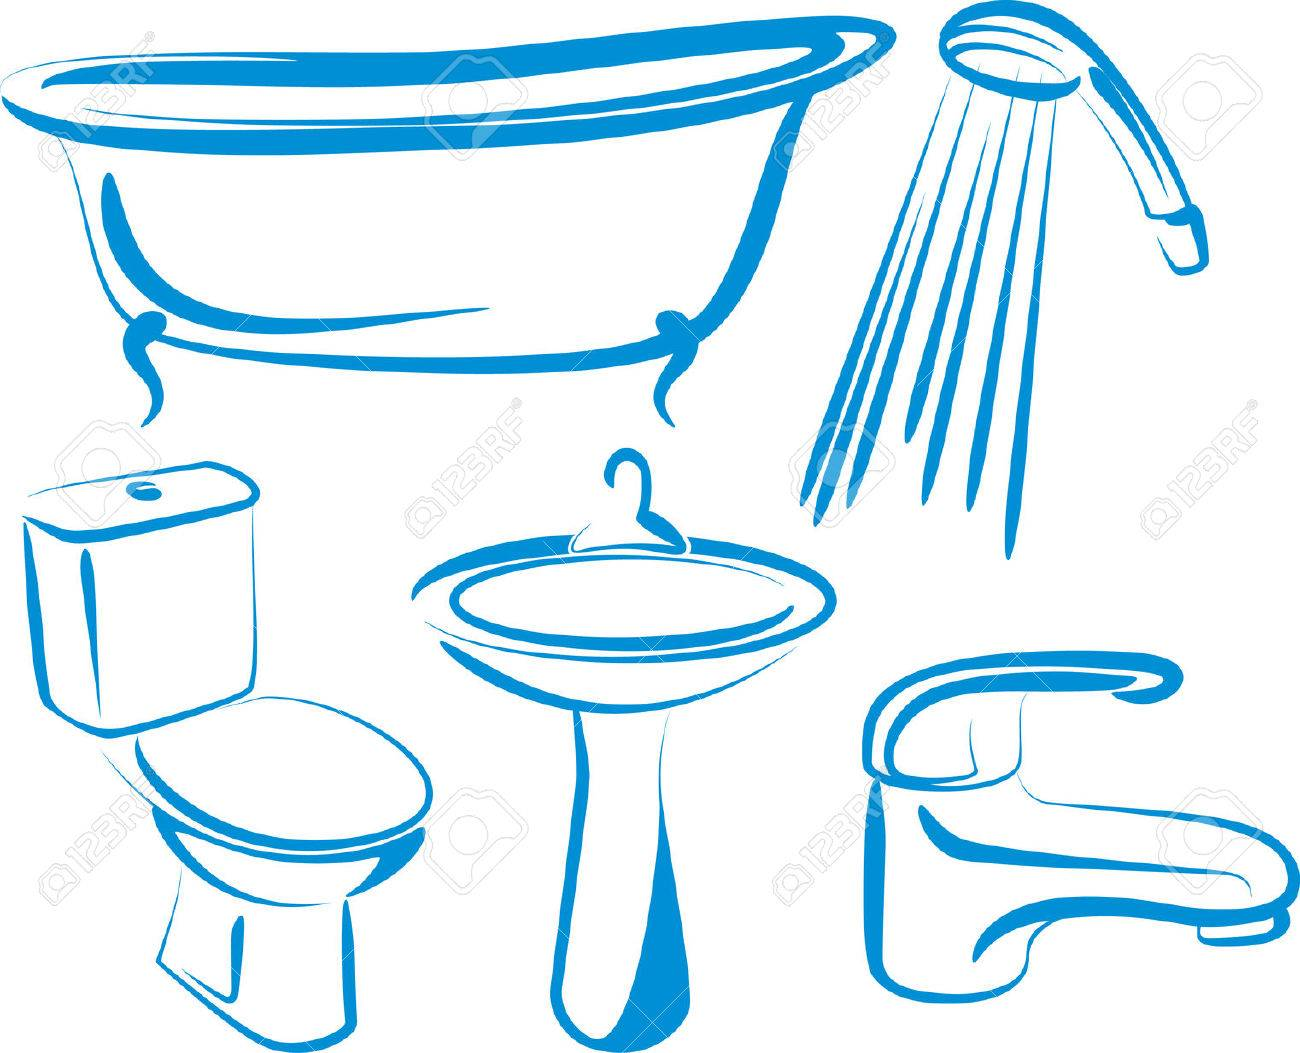 Bathroom counter clipart